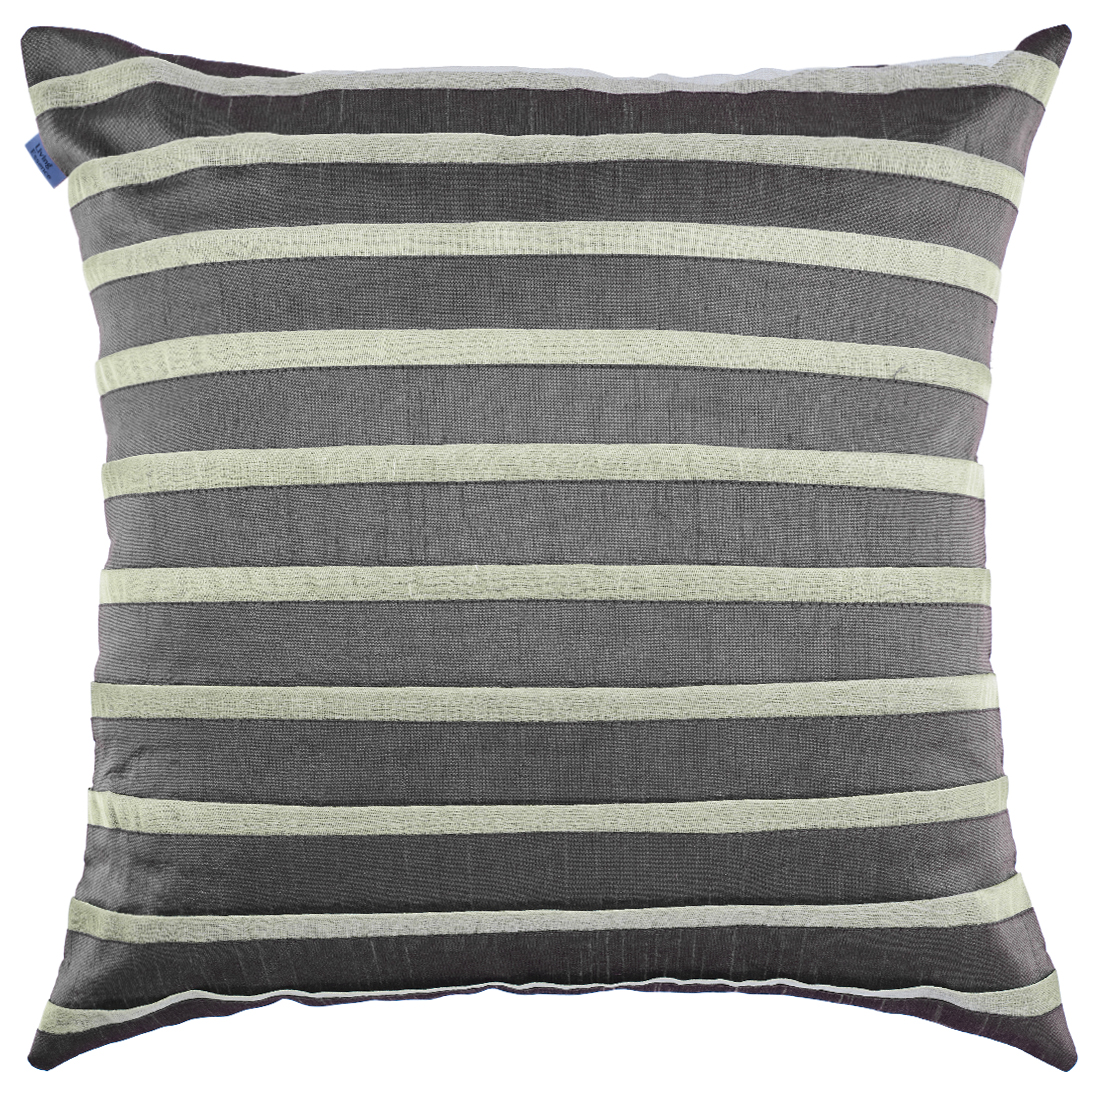 Michelle Polyester Cushion Covers in Black Colour by Living Essence